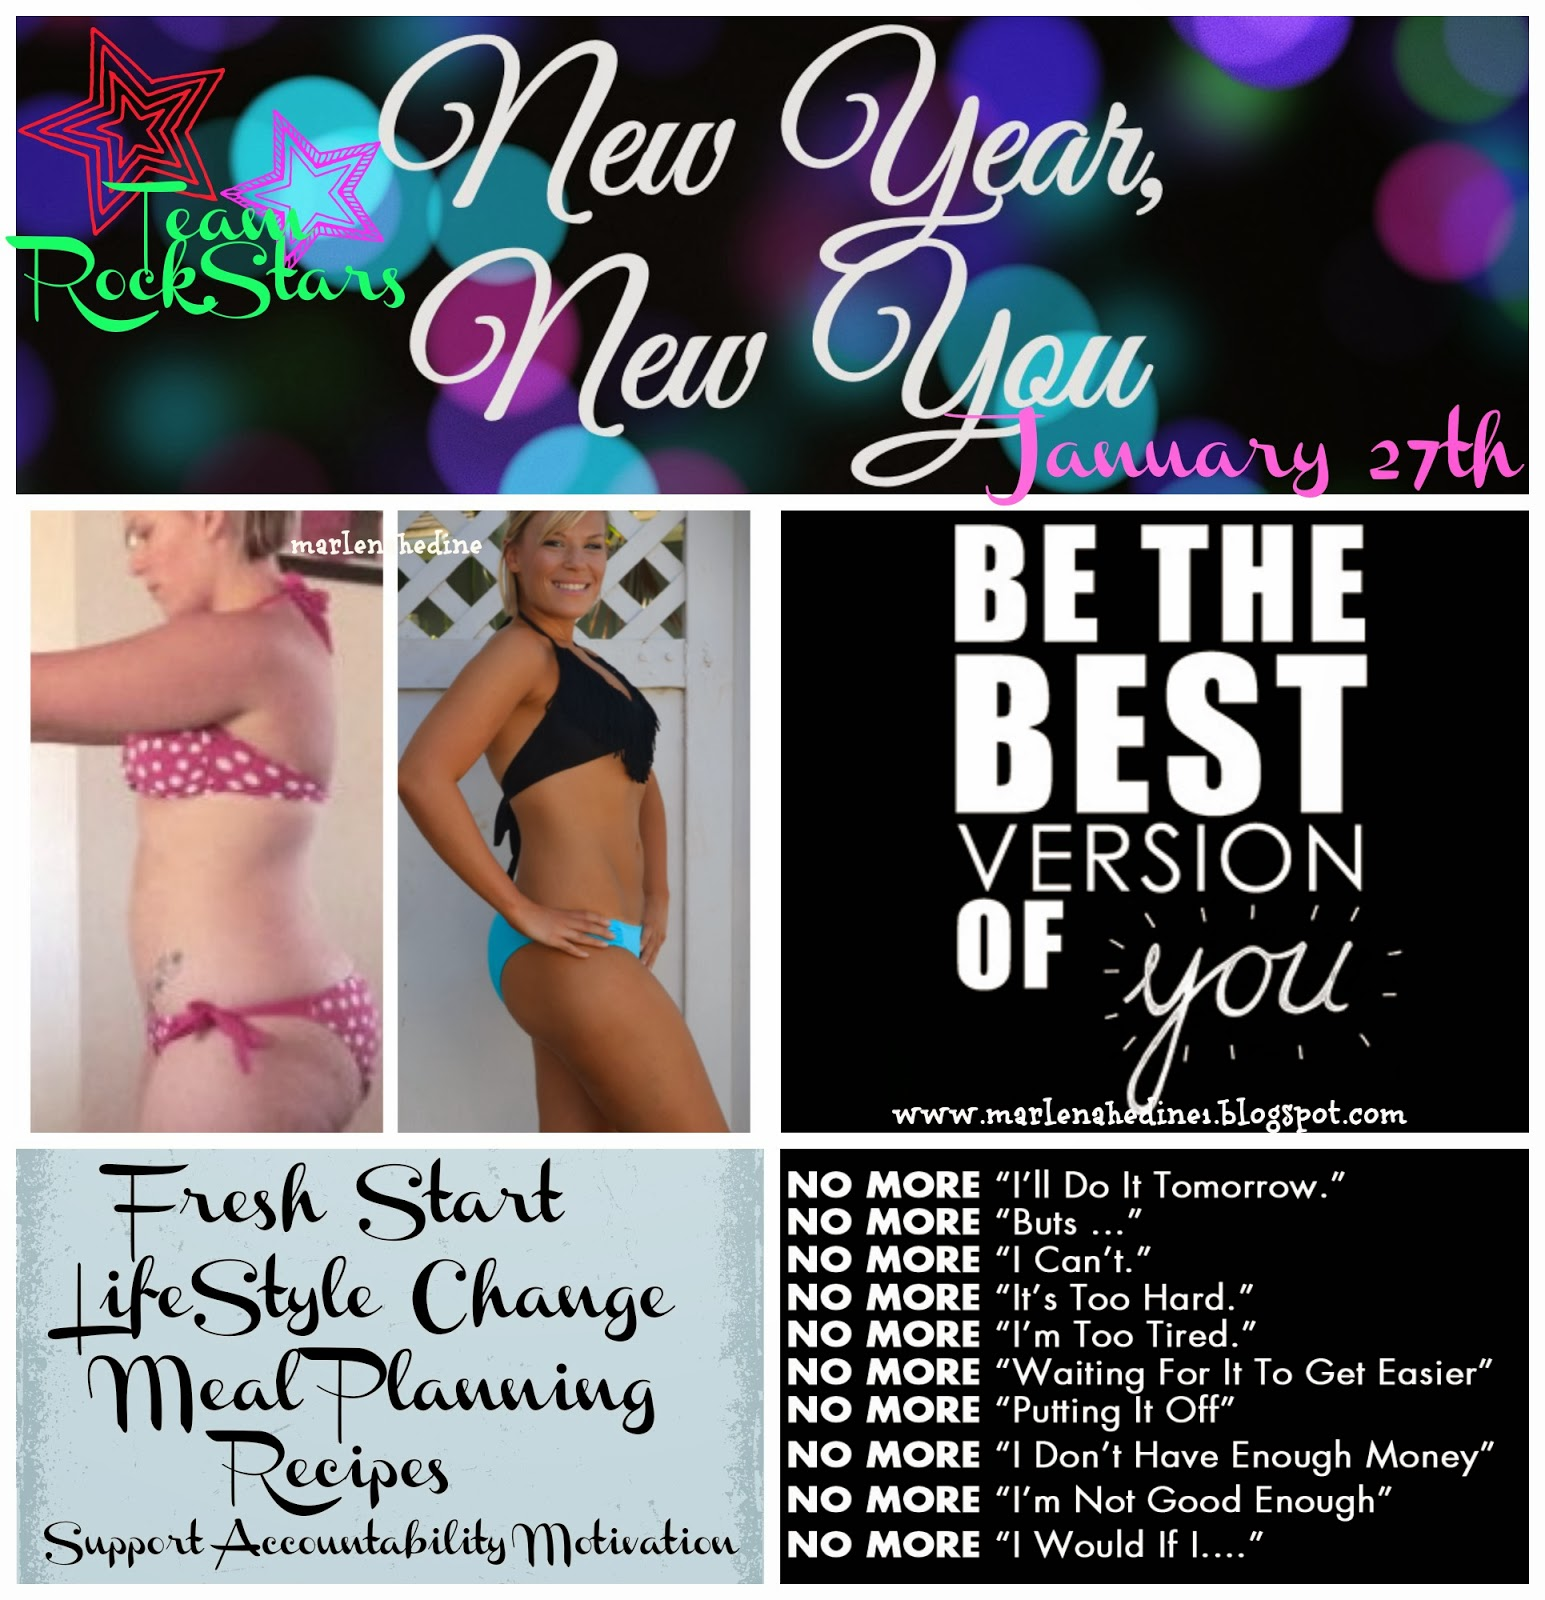 Challenge group, clean eating, weightloss, New Year New You